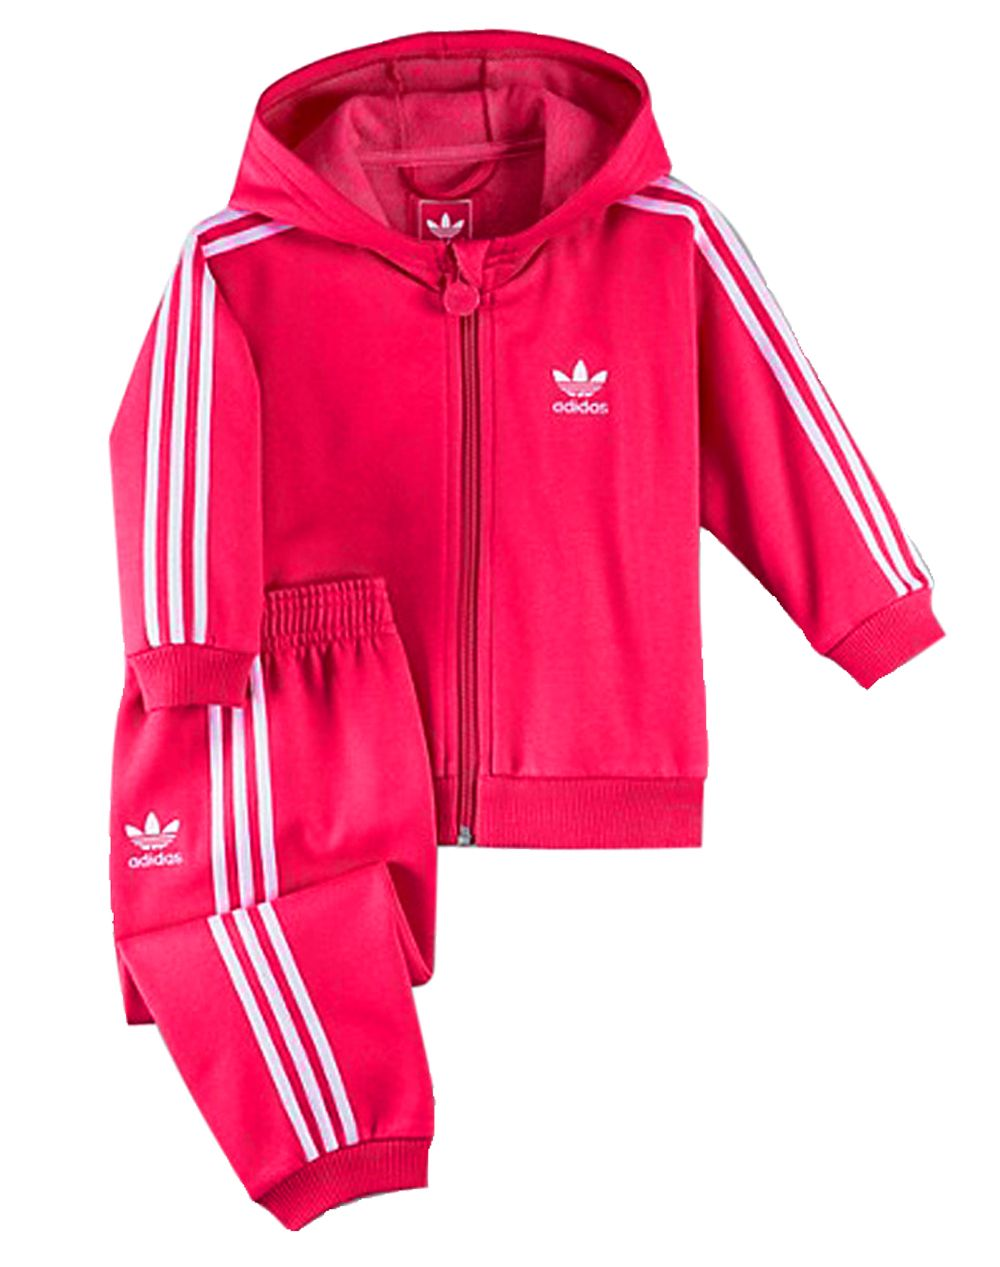 fb879bda2d92 Adidas Originals 3 Stripe Fleece Hooded Pink White Infants Tracksuit ...